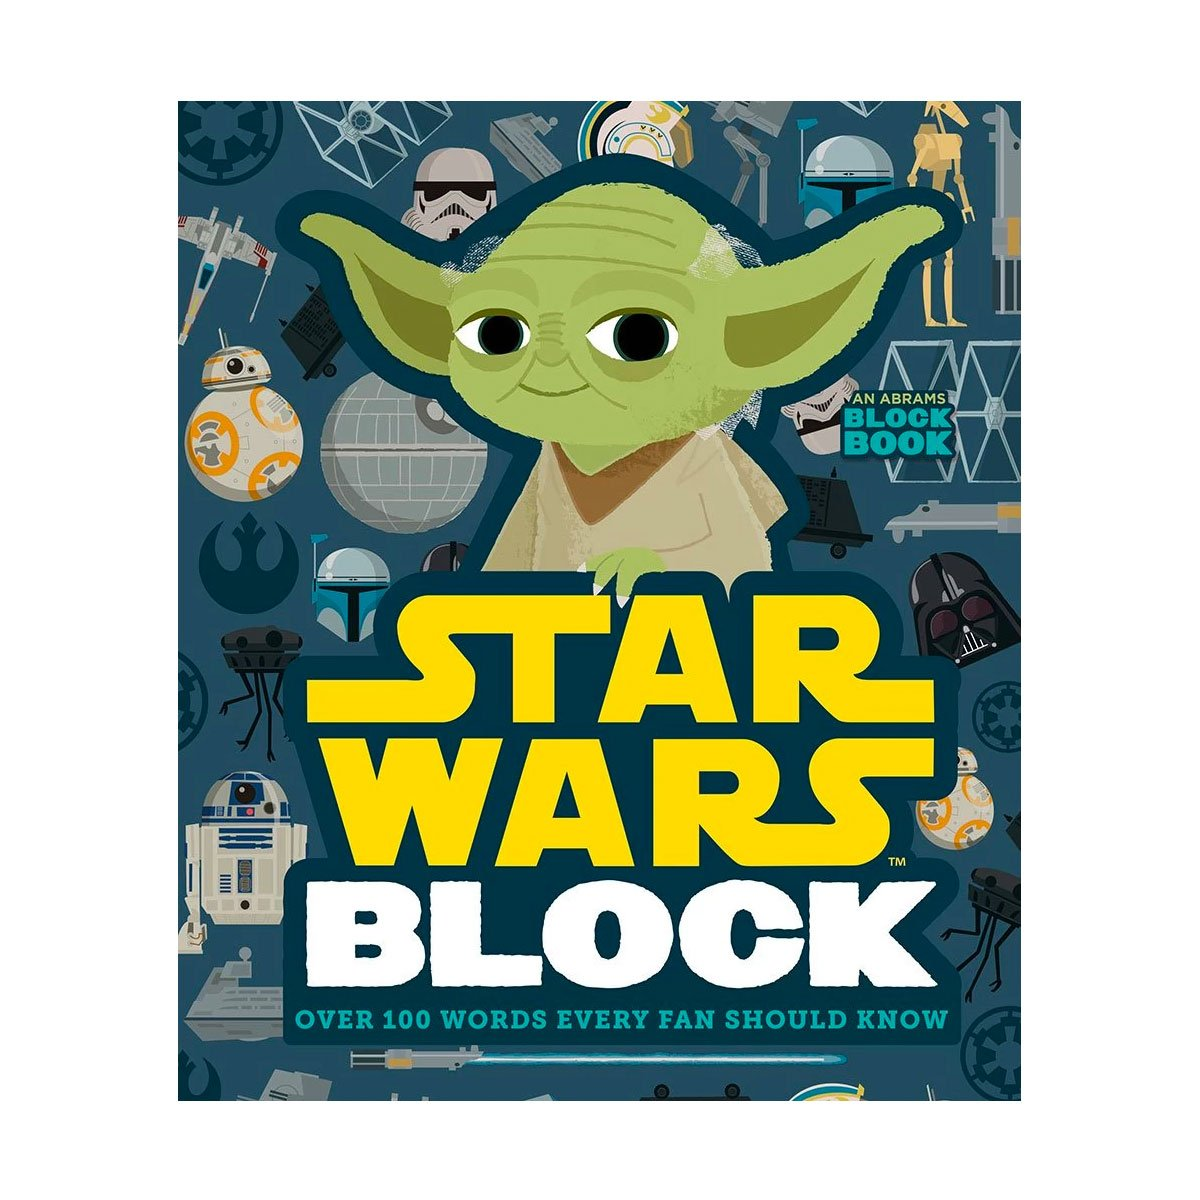 Star Wars Block Book Little Earth Nest Books at Little Earth Nest Eco Shop